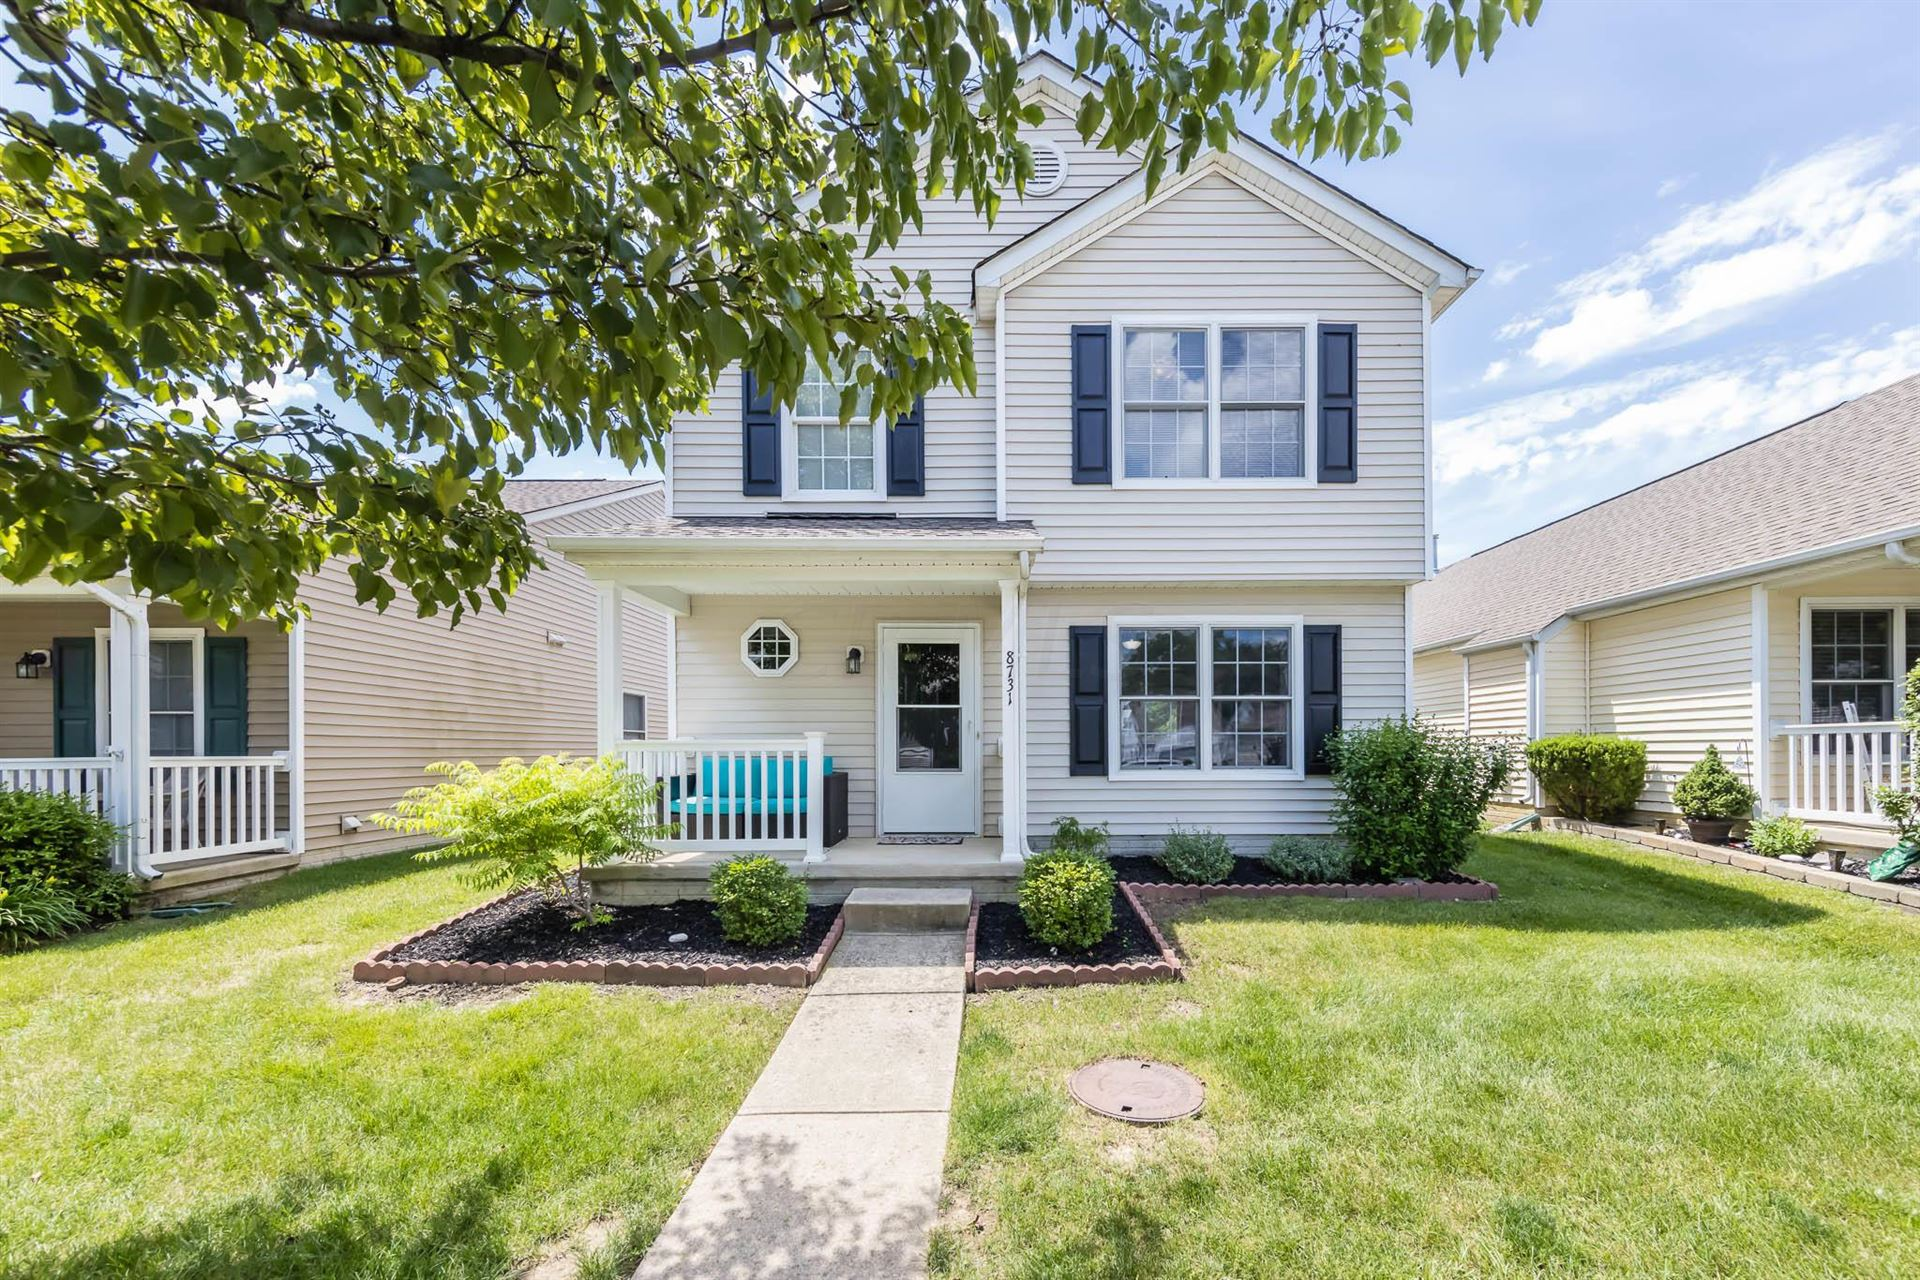 Photo for 8731 Arrowtip Lane, Lewis Center, OH 43035 (MLS # 221020872)